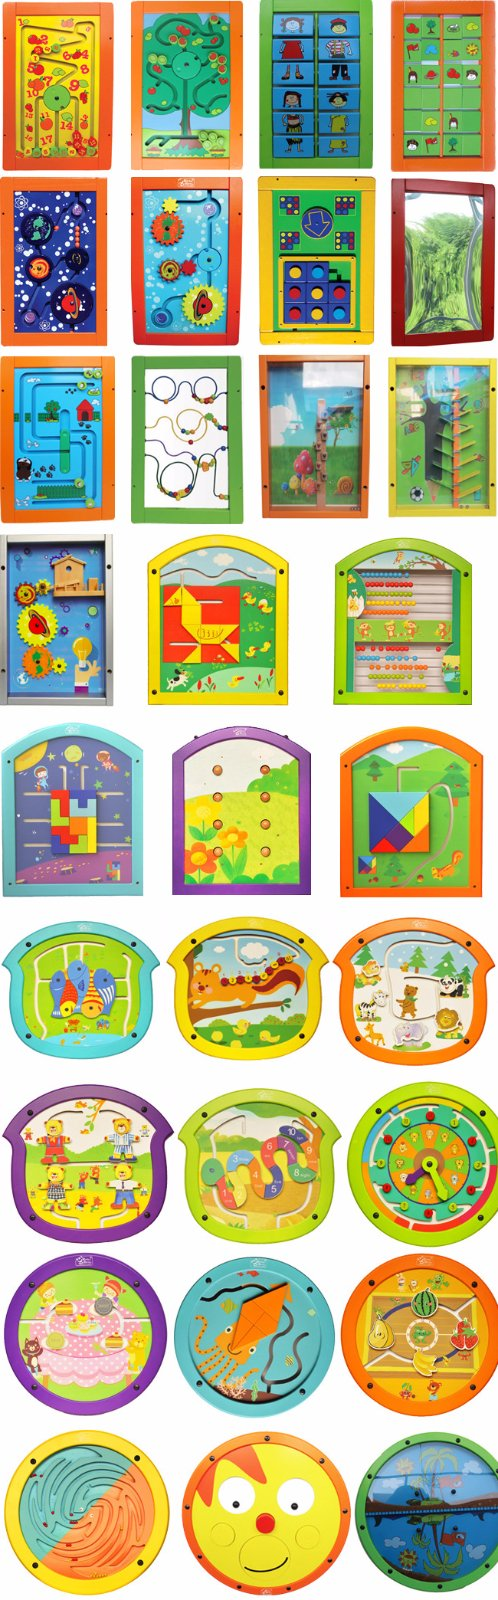 Educational Play Board Mounted on Wall for Children